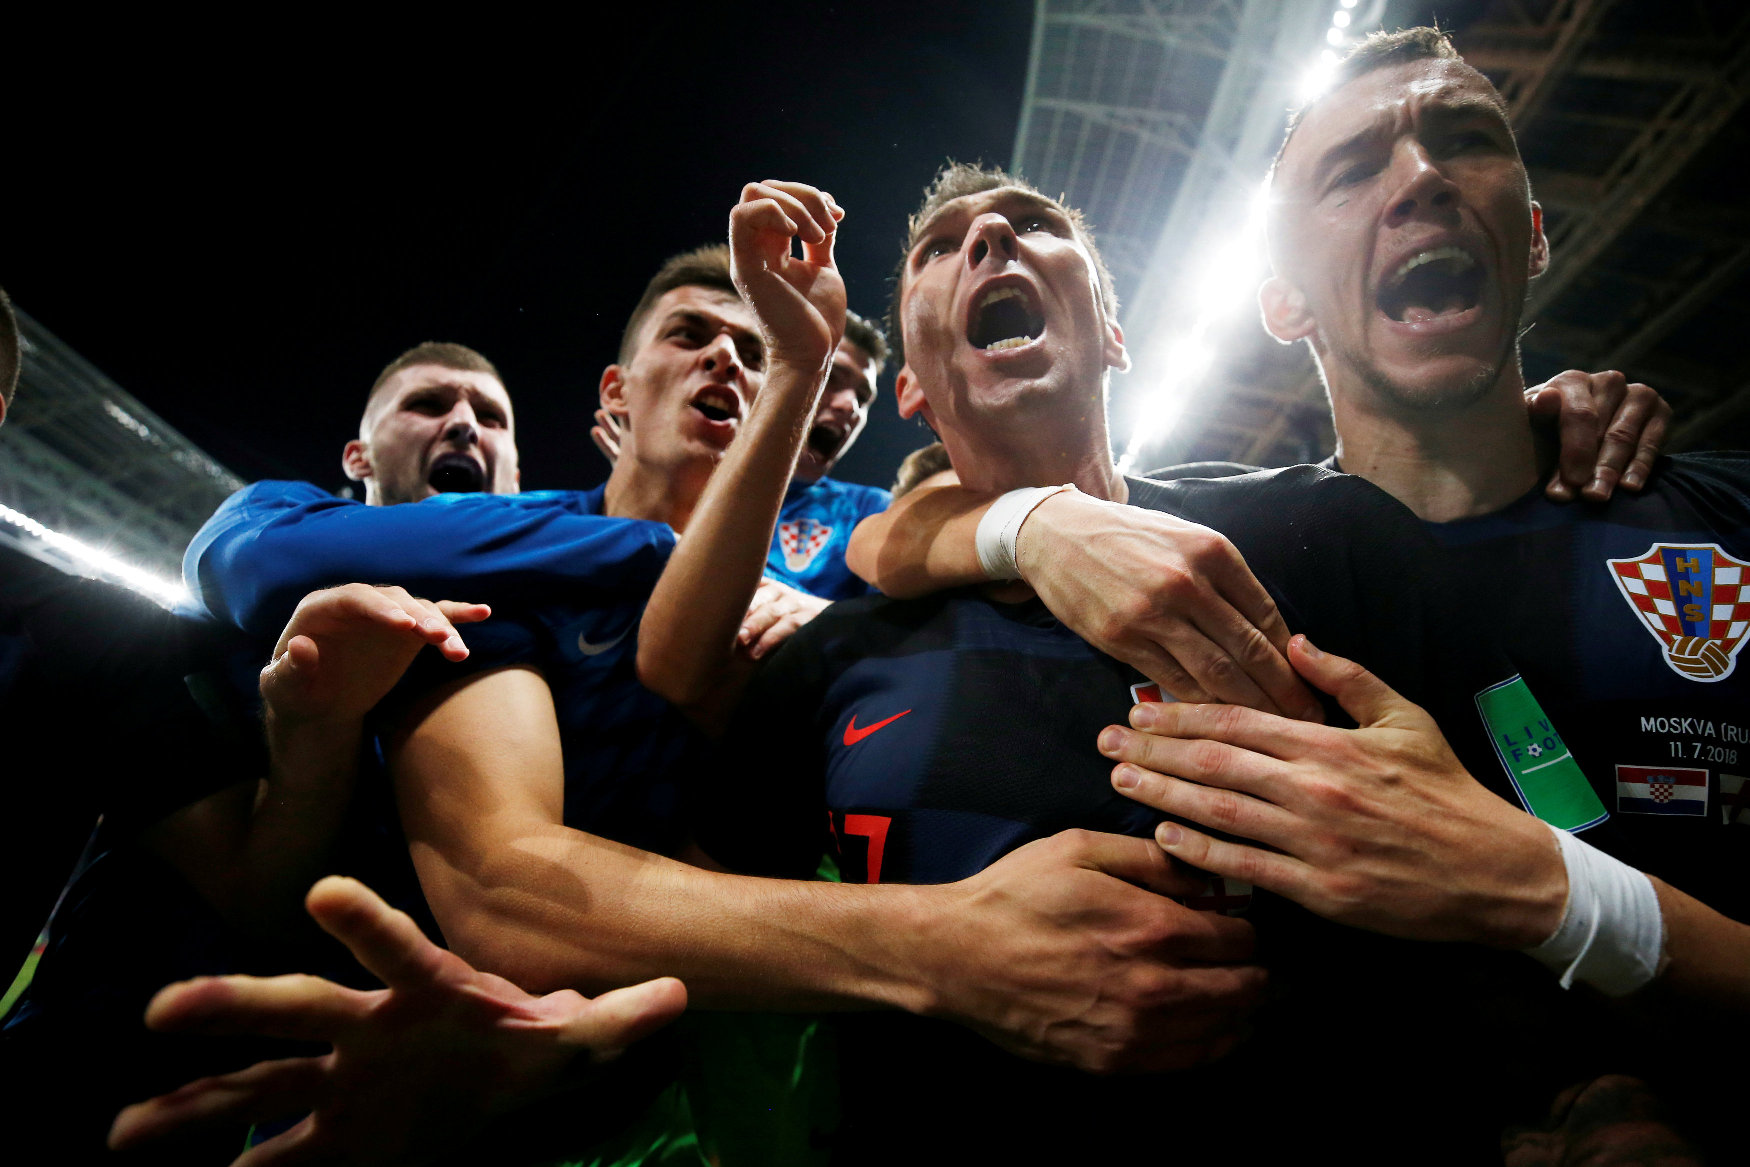 2018-07-11T212438Z_1301134258_RC19C9CC3280_RTRMADP_3_SOCCER-WORLDCUP-CRO-ENG